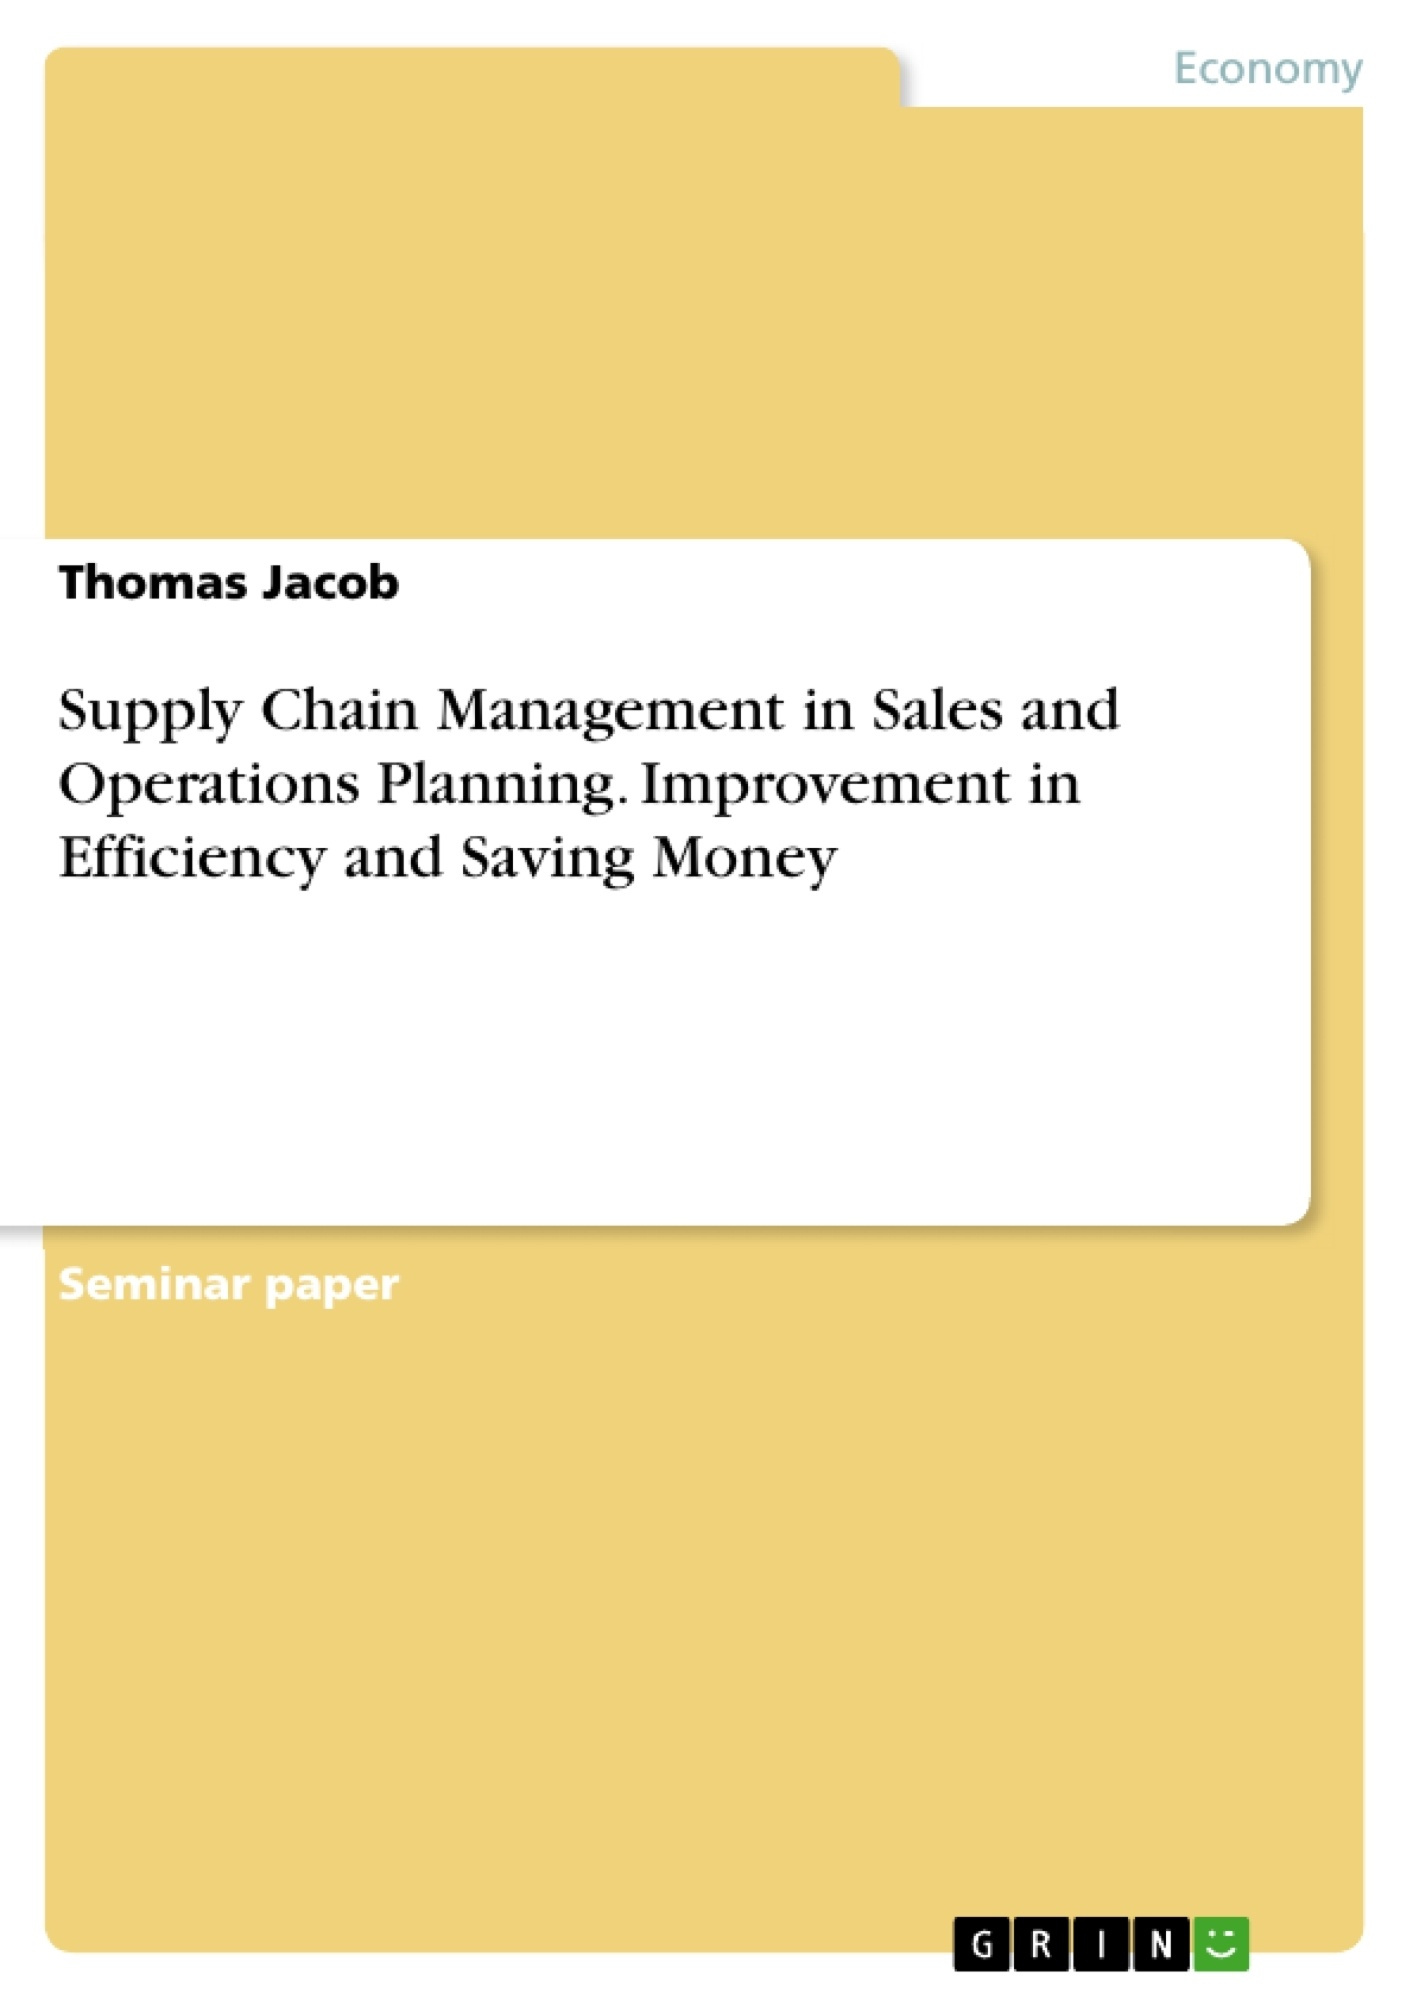 Title: Supply Chain Management in Sales and Operations Planning. Improvement in Efficiency and Saving Money